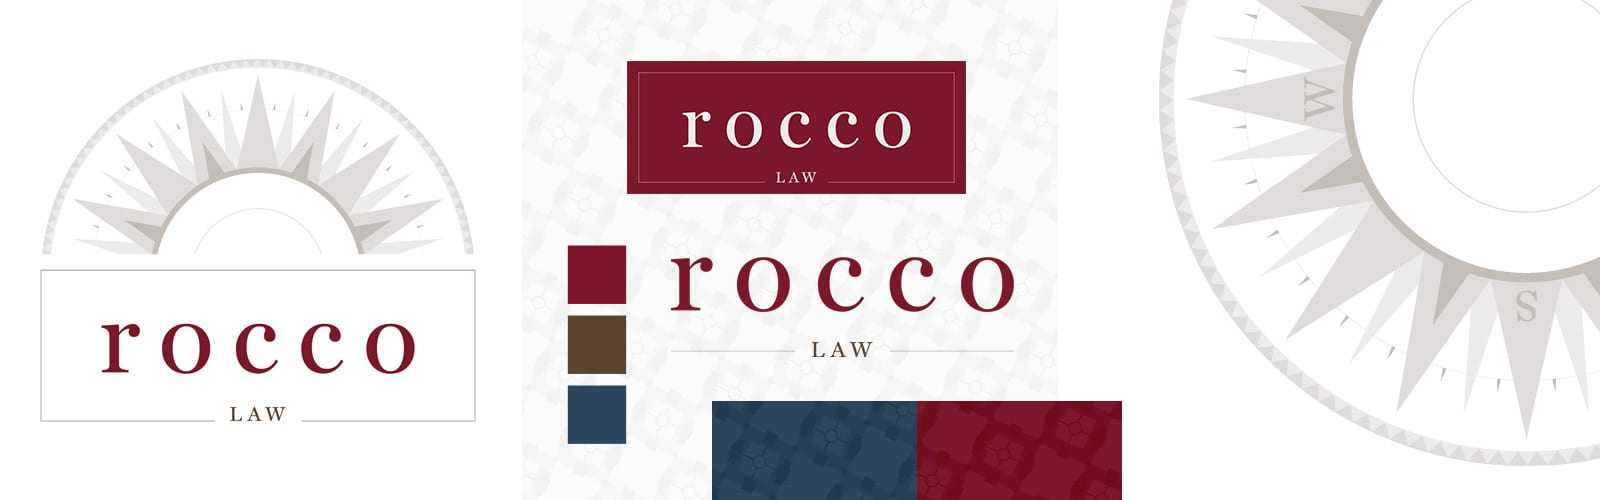 Law Firm Branding and Logo Design